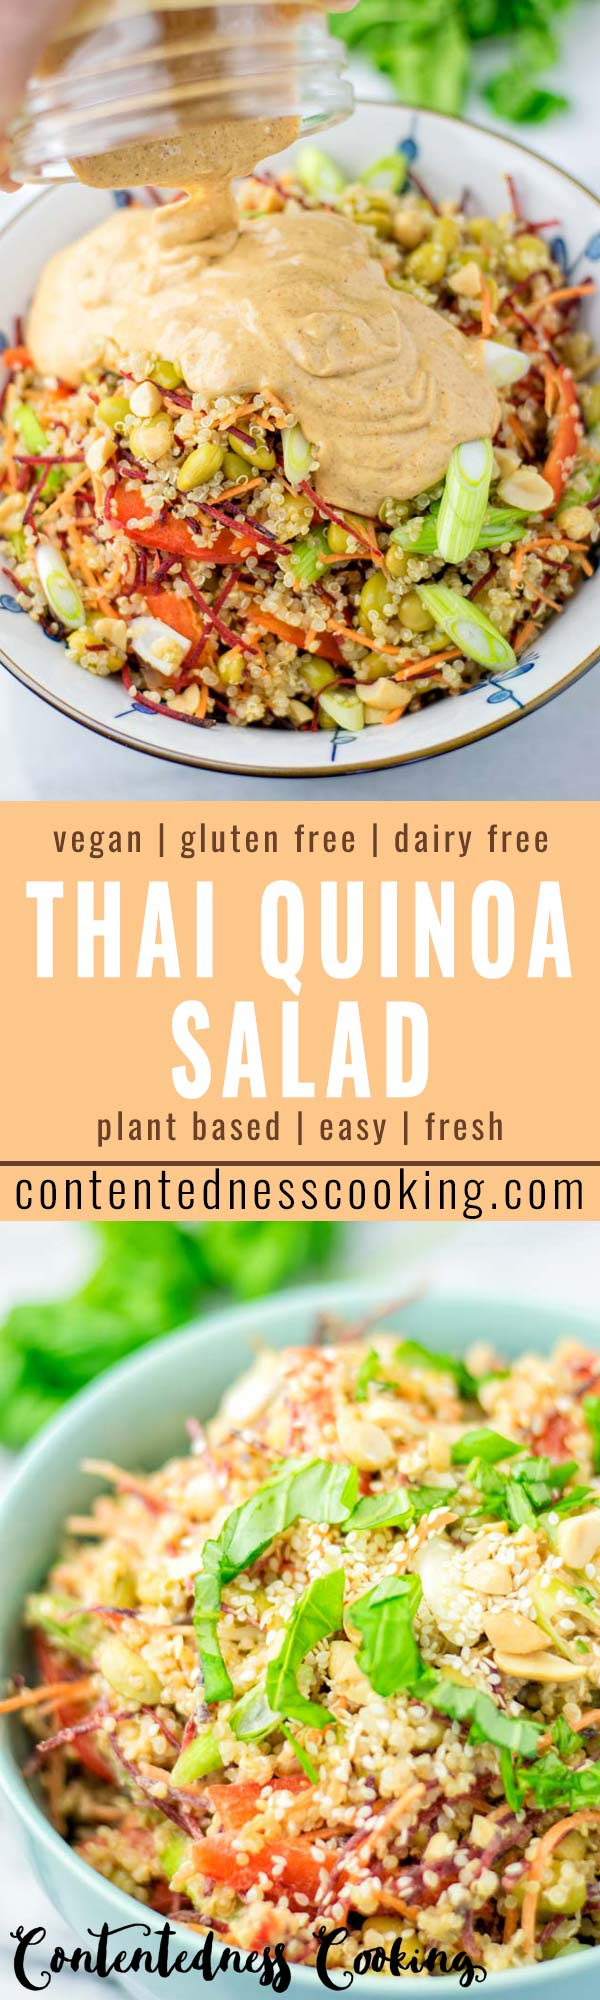 This Thai Quinoa Salad is super easy to make and naturally vegan, gluten free. It is all covered with the most delicious dressing you can ask you. Enjoy it for dinner, lunch, meal prep, work lunch and quick family meals. Even the pickiest kids will love it in no time. #vegan #dairyfree #glutenfree #dinner #lunch #mealprep #bugdetmeals #worklunchideas #vegetarian #contentednesscooking #familydinner #kidsmeals #thaiquinoasalad